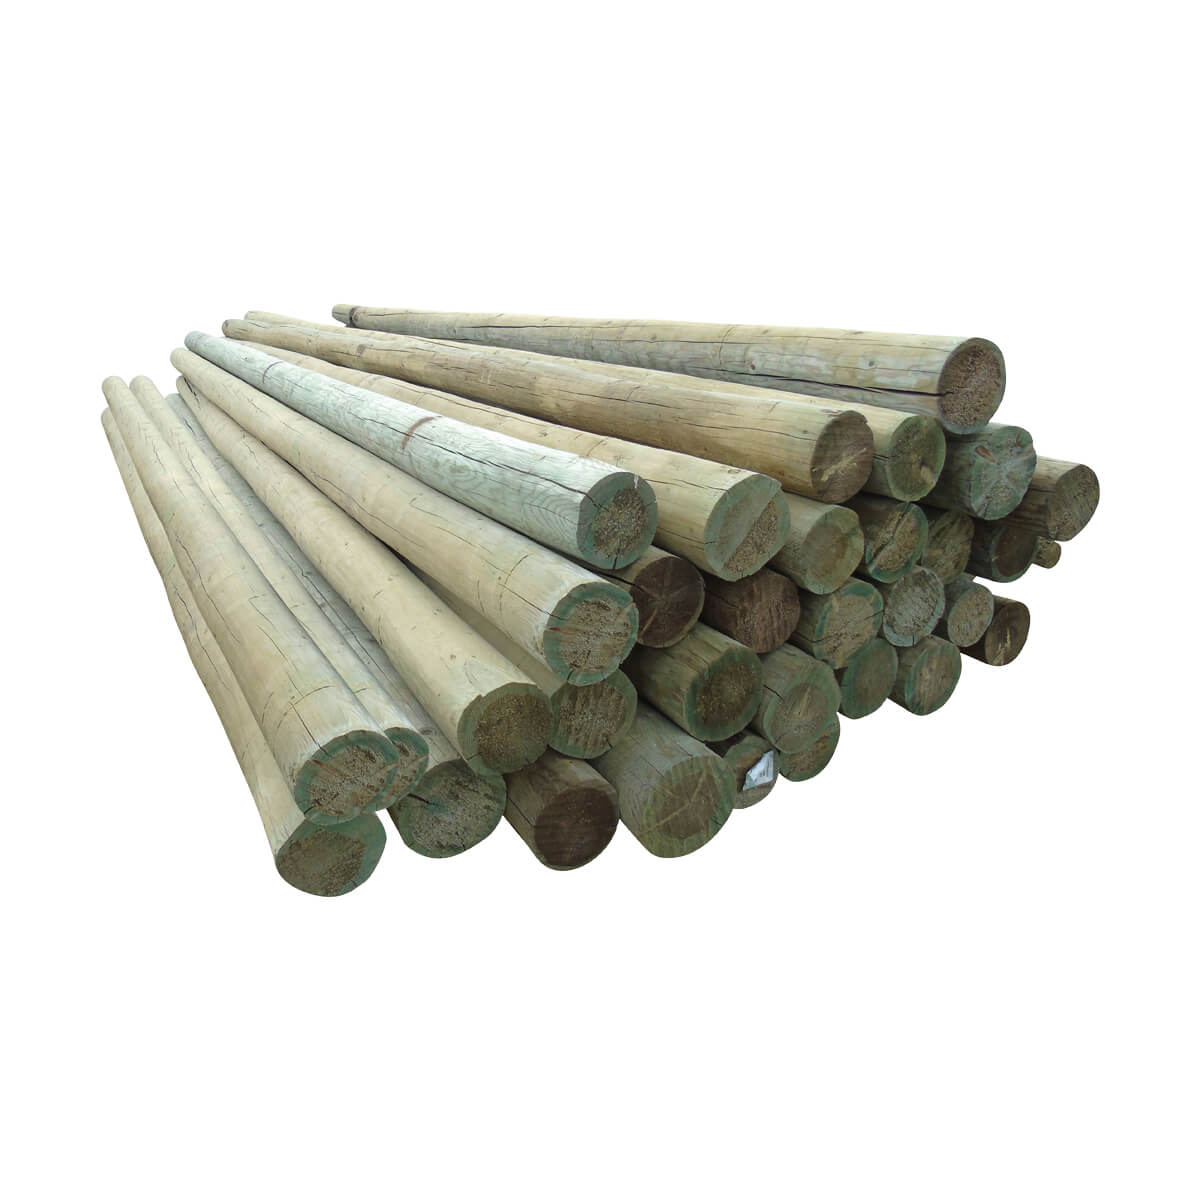 Peeled Fence Poles - Blunt - 7-in x 8-ft